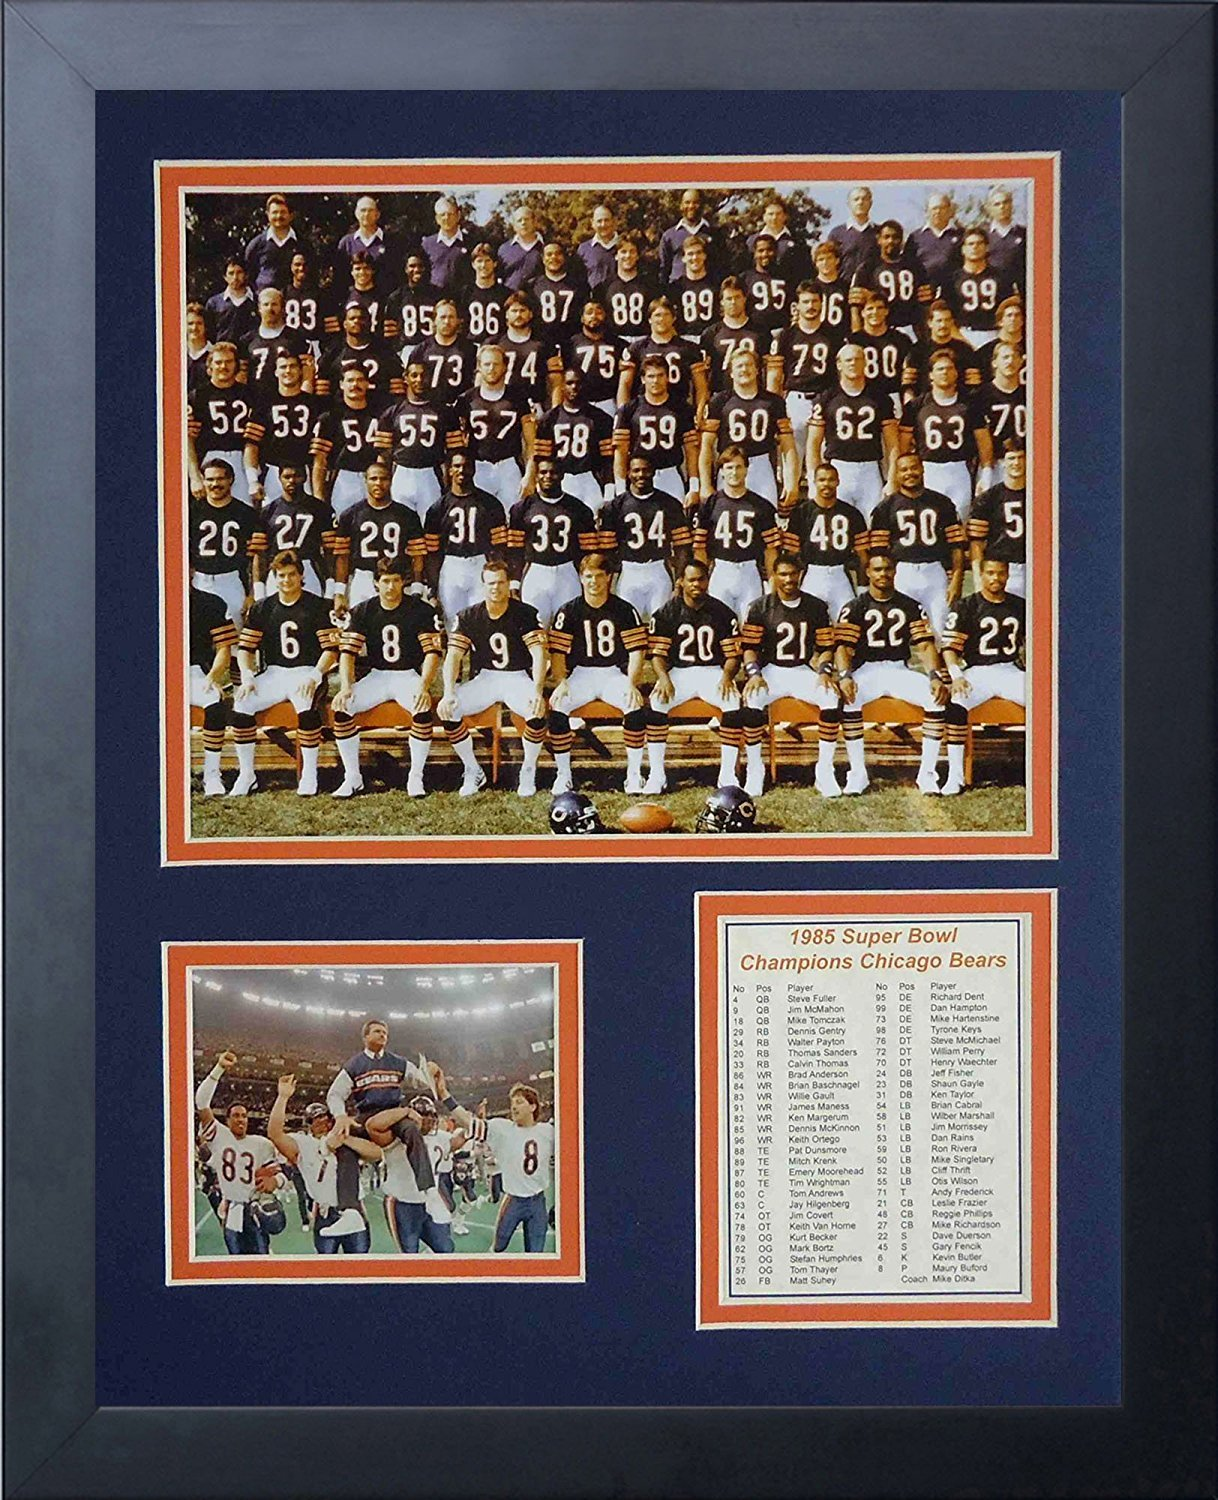 Amazon.com : Legends Never Die 1985 Chicago Bears Framed Photo ...